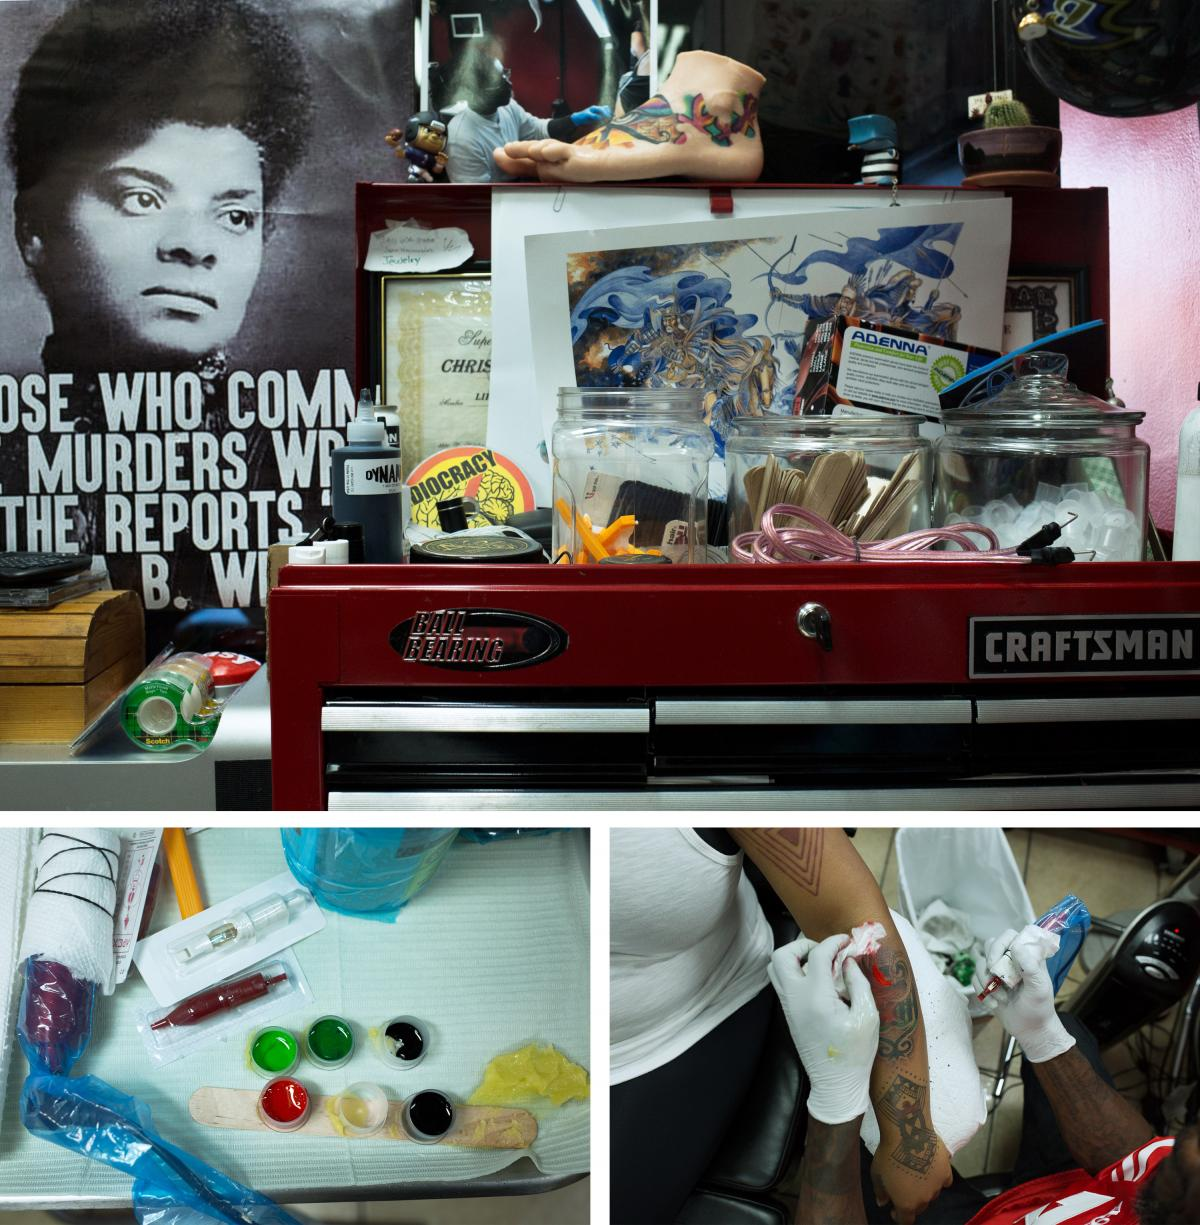 (Top) Mensah encourages the artists in his shop to decorate their workspaces with things they like. (Left) He lays out colors and tools at his station before starting Afrique's tattoo (right).